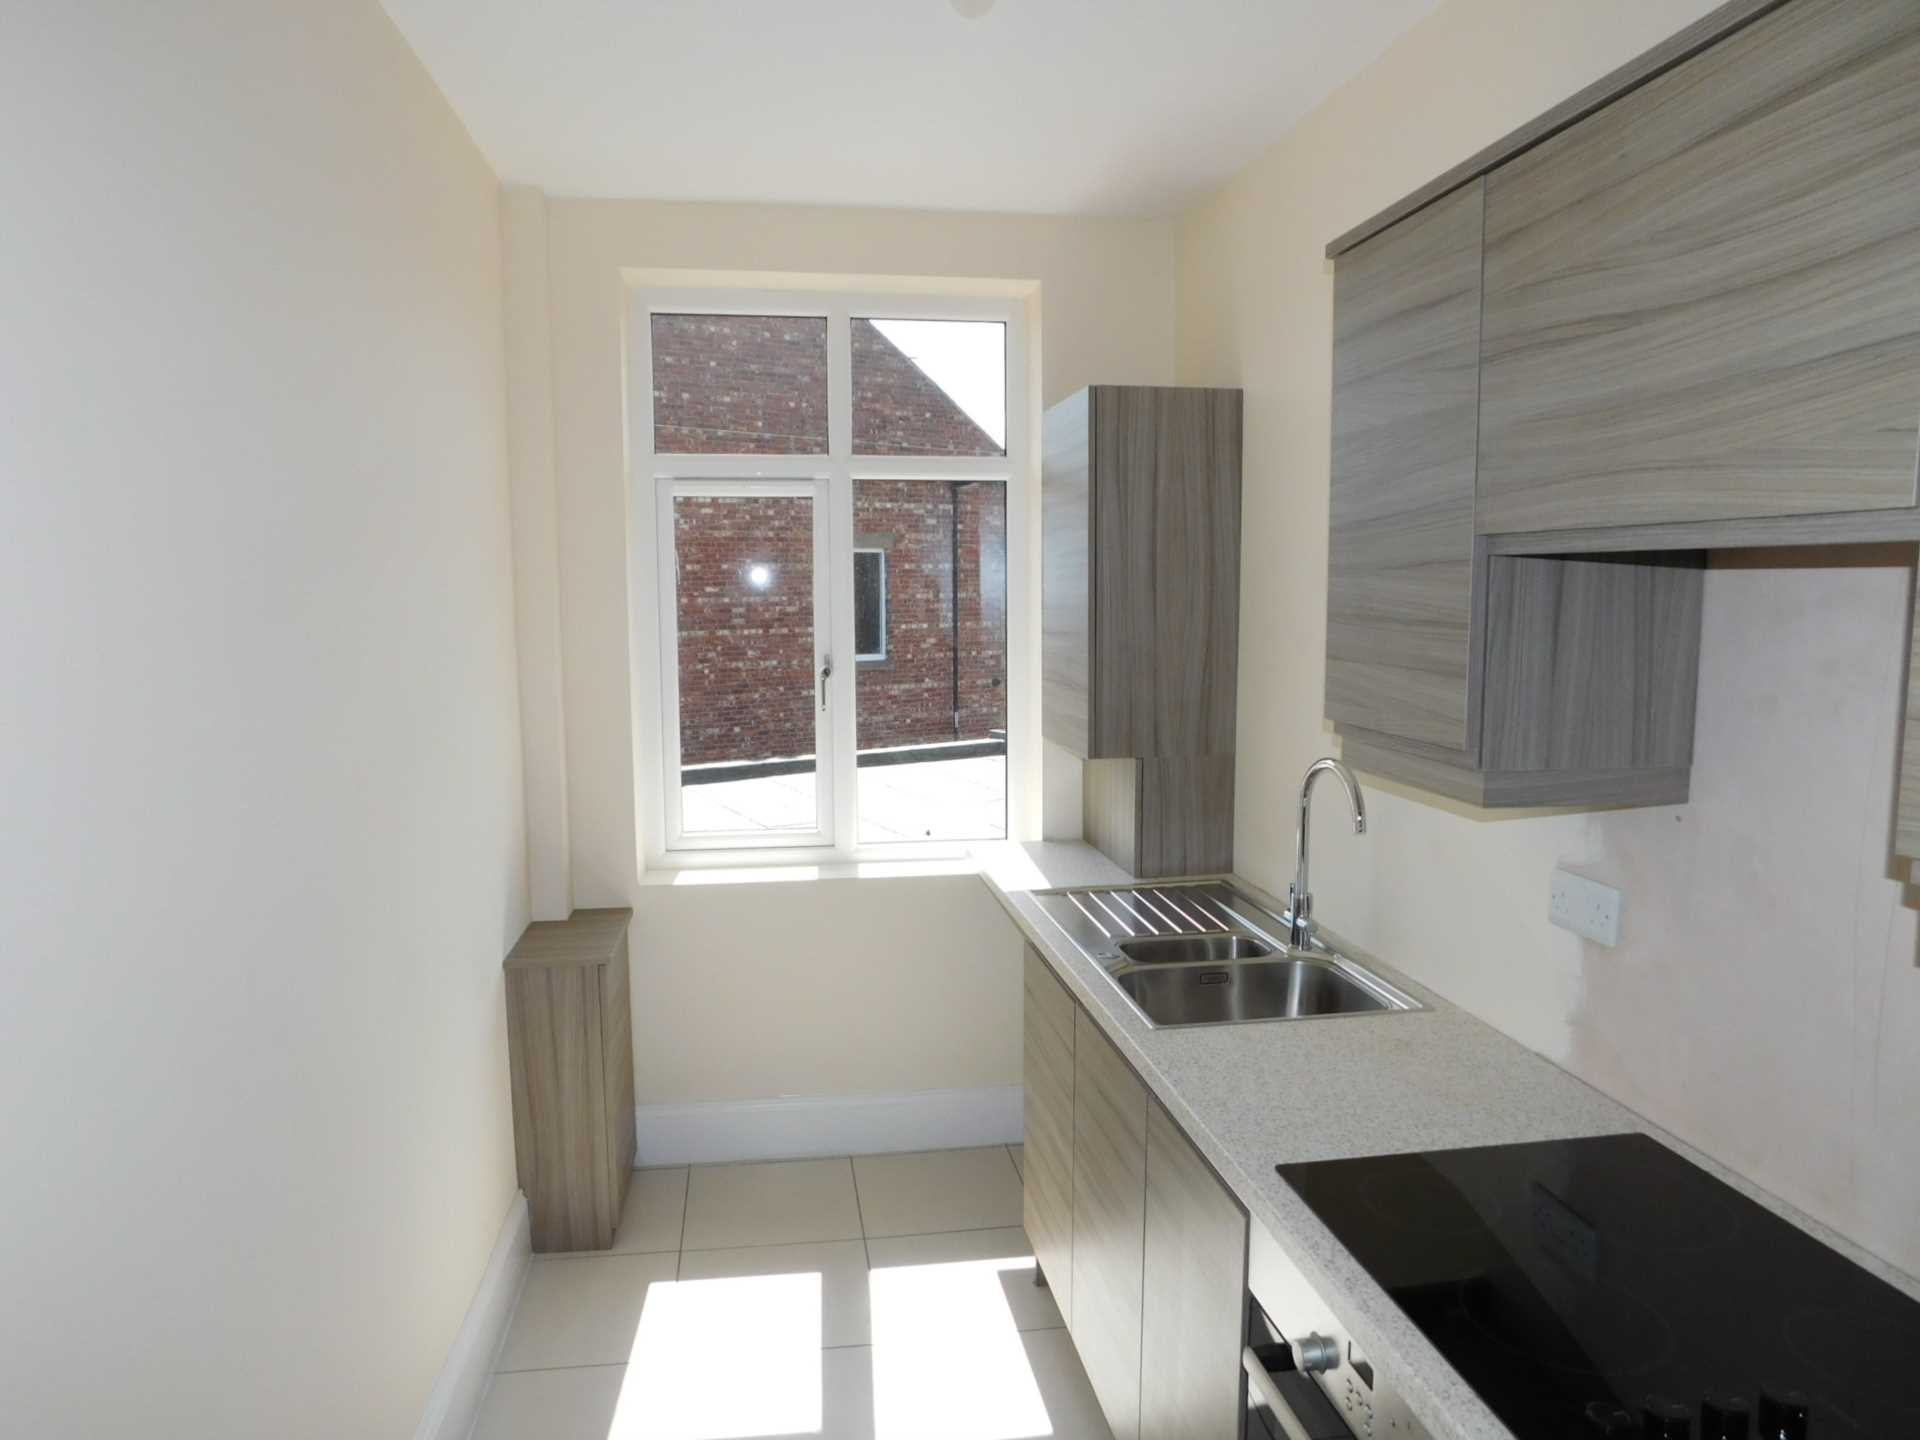 2 Bedroom Apartment, Kingswood Avenue, Jesmond, Newcastle